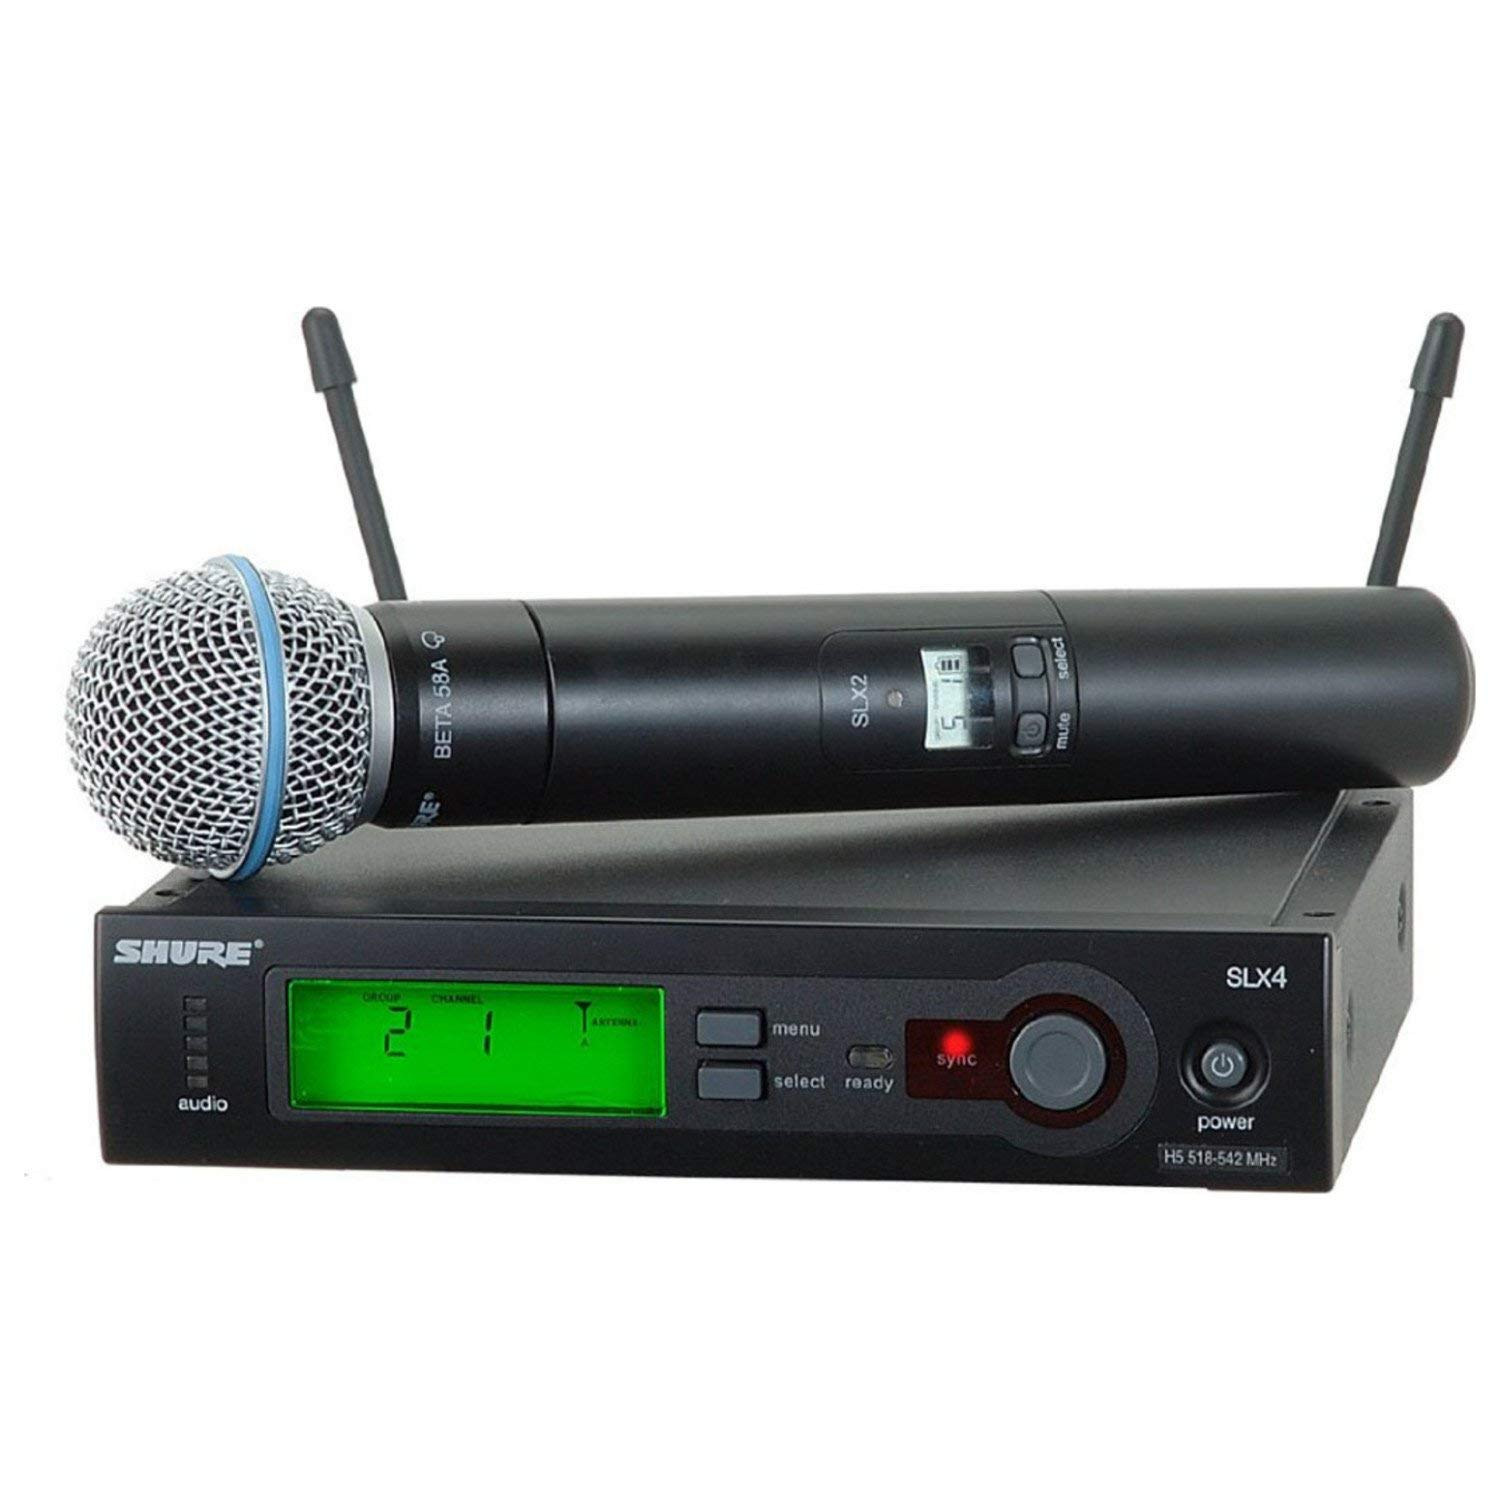 Shure SLX24/BETA58-G4 Wireless Microphone System (G4/470-494 MHz), Includes SLX4 Receiver, SLX2 Handheld Transmitter and Beta 58 Microphone